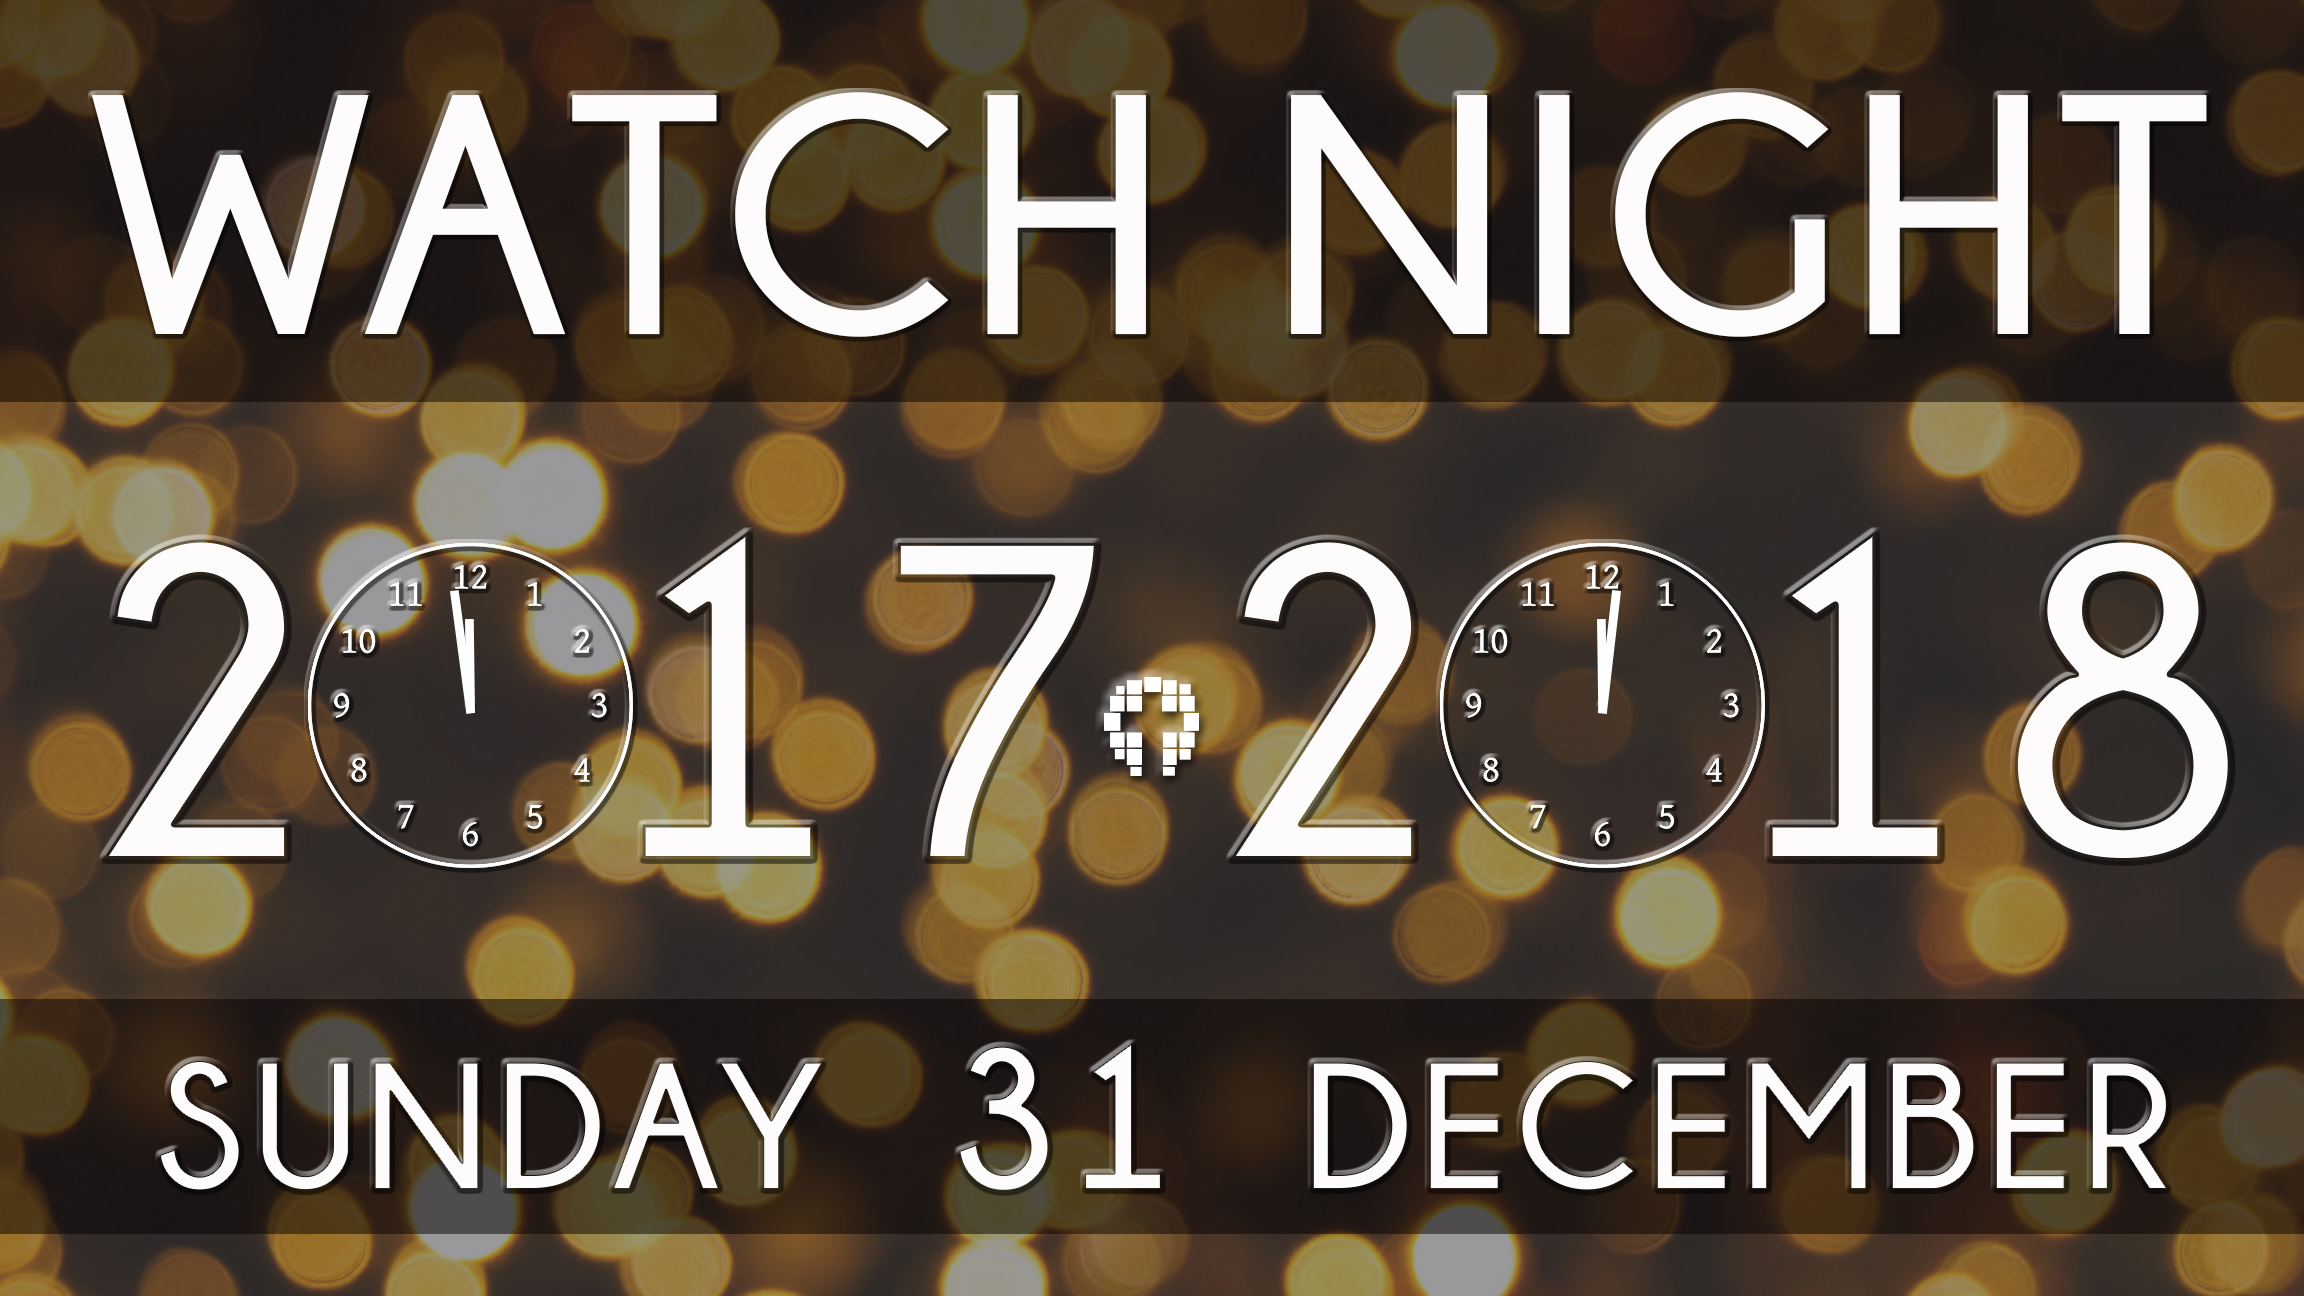 Watchnight 2017